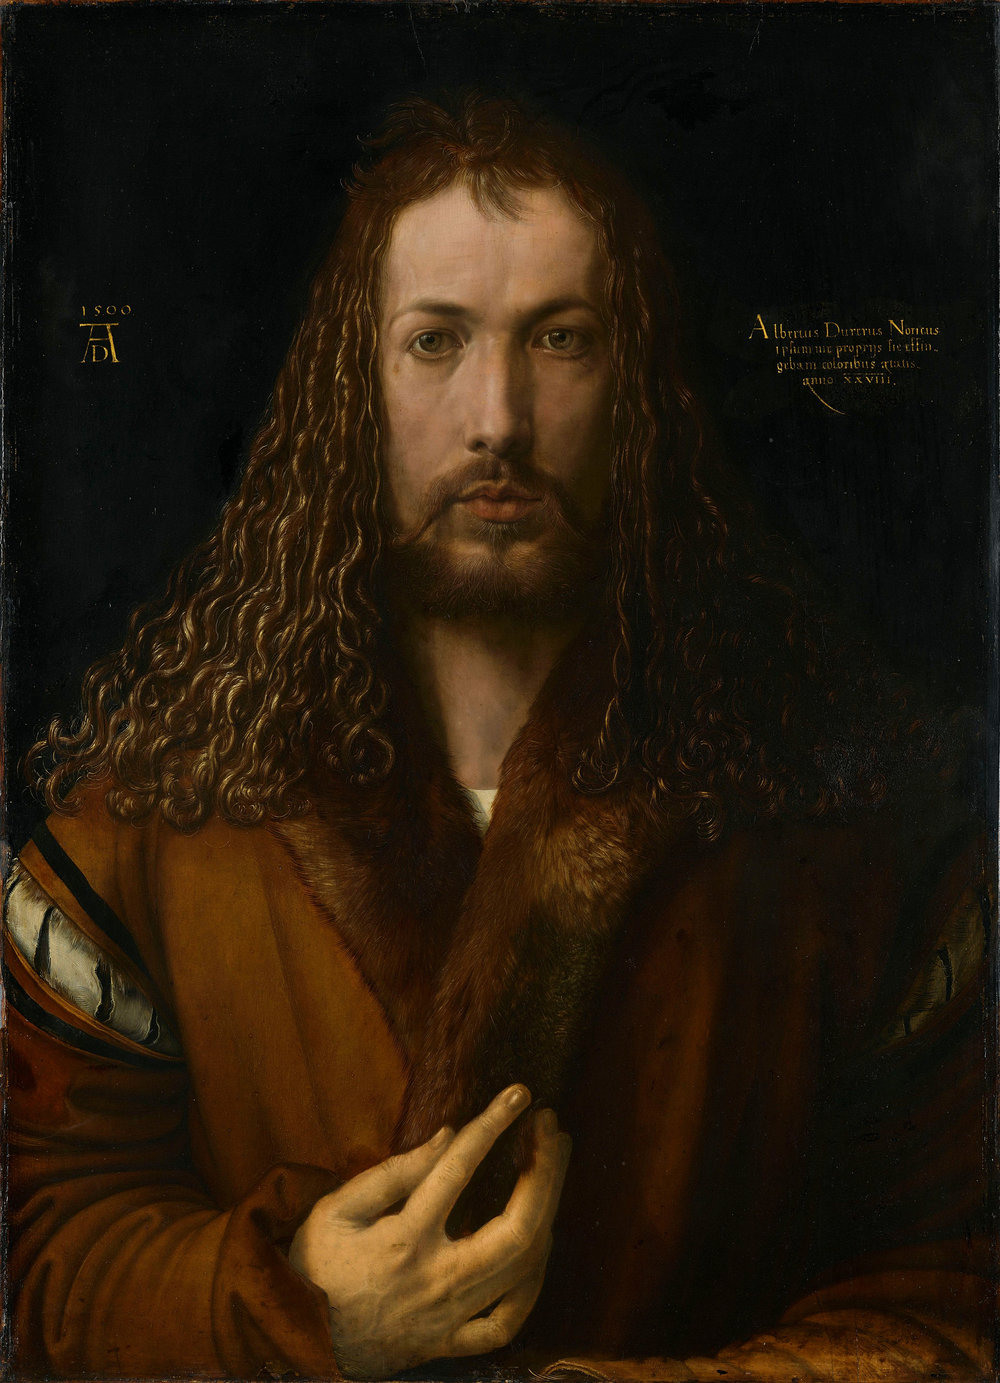 Albrecht Dürer, Self Portrait in Fur, 1500, oil on canvas